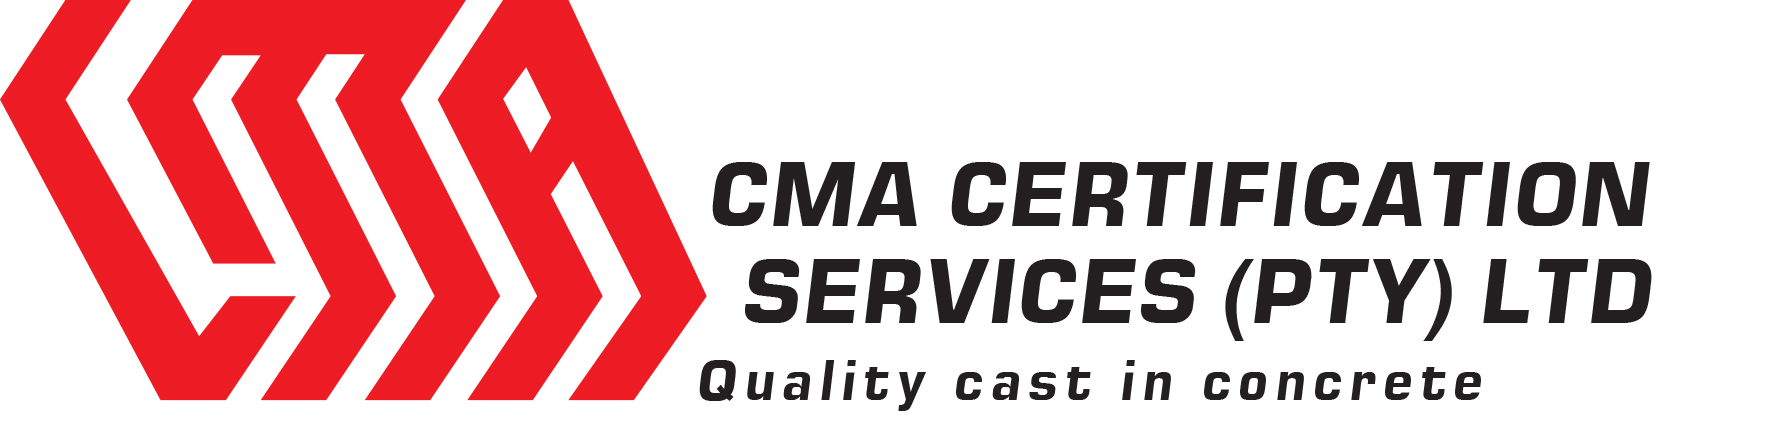 certification_services_logo